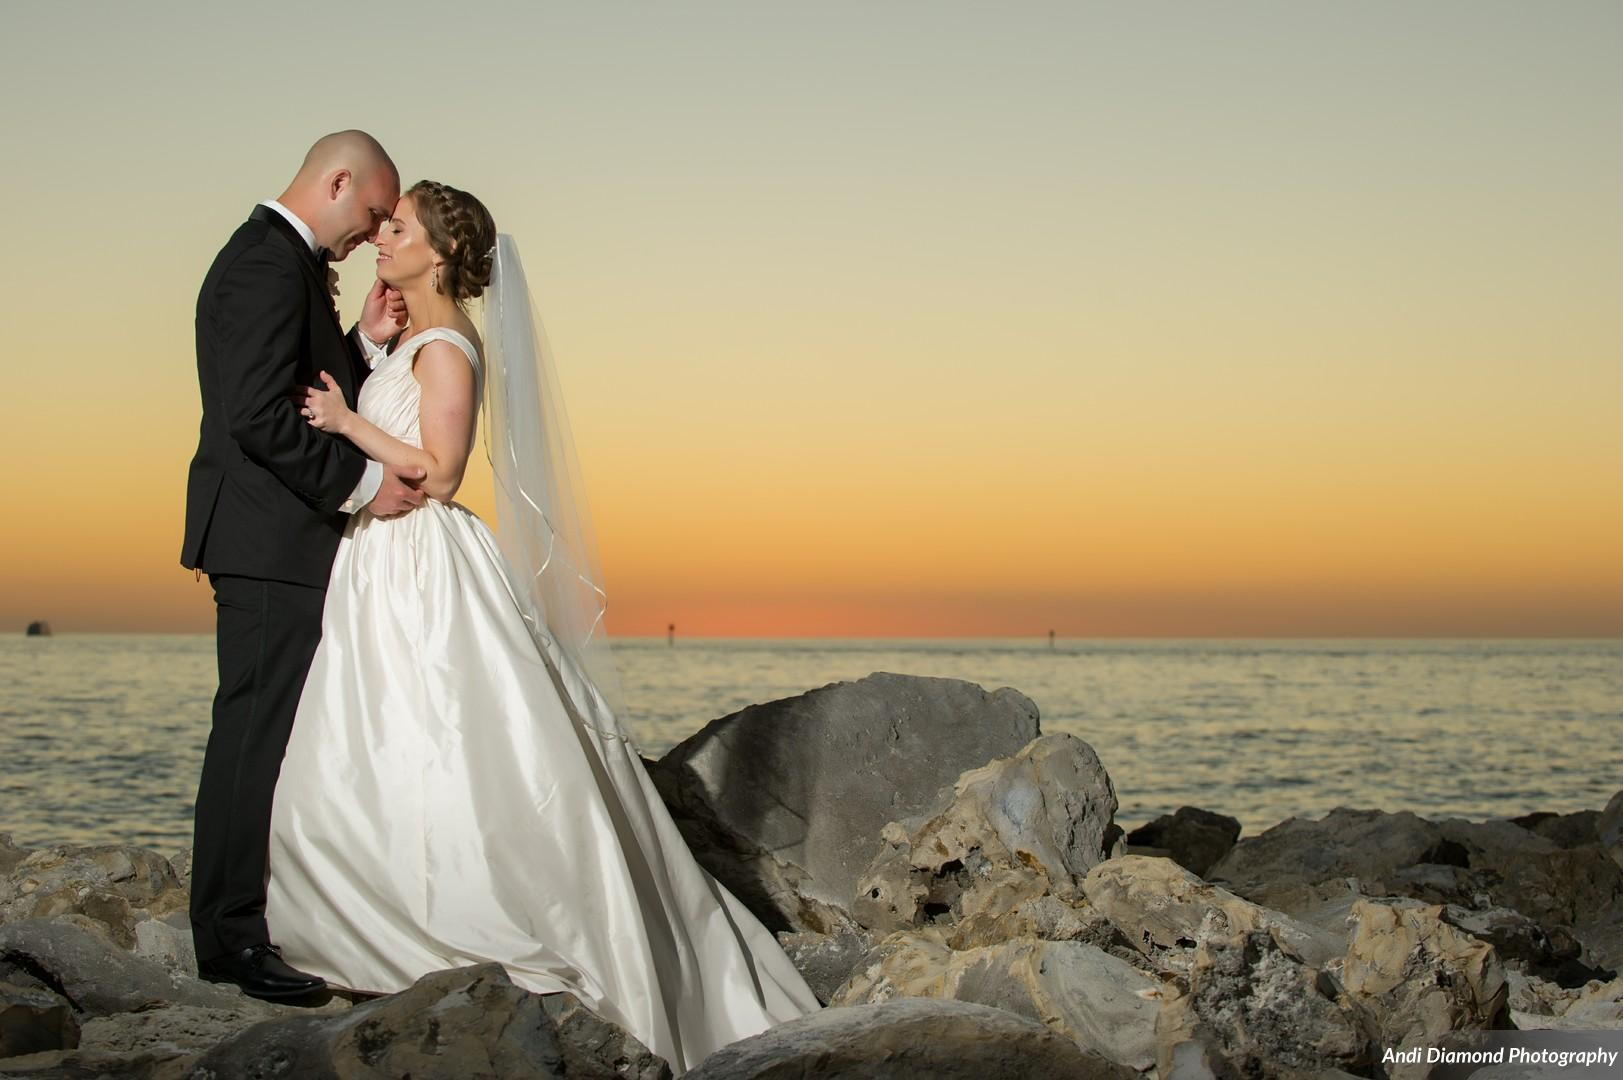 Clearwater beach and a Florida sunset provided the perfect backdrop for romantic portraits.